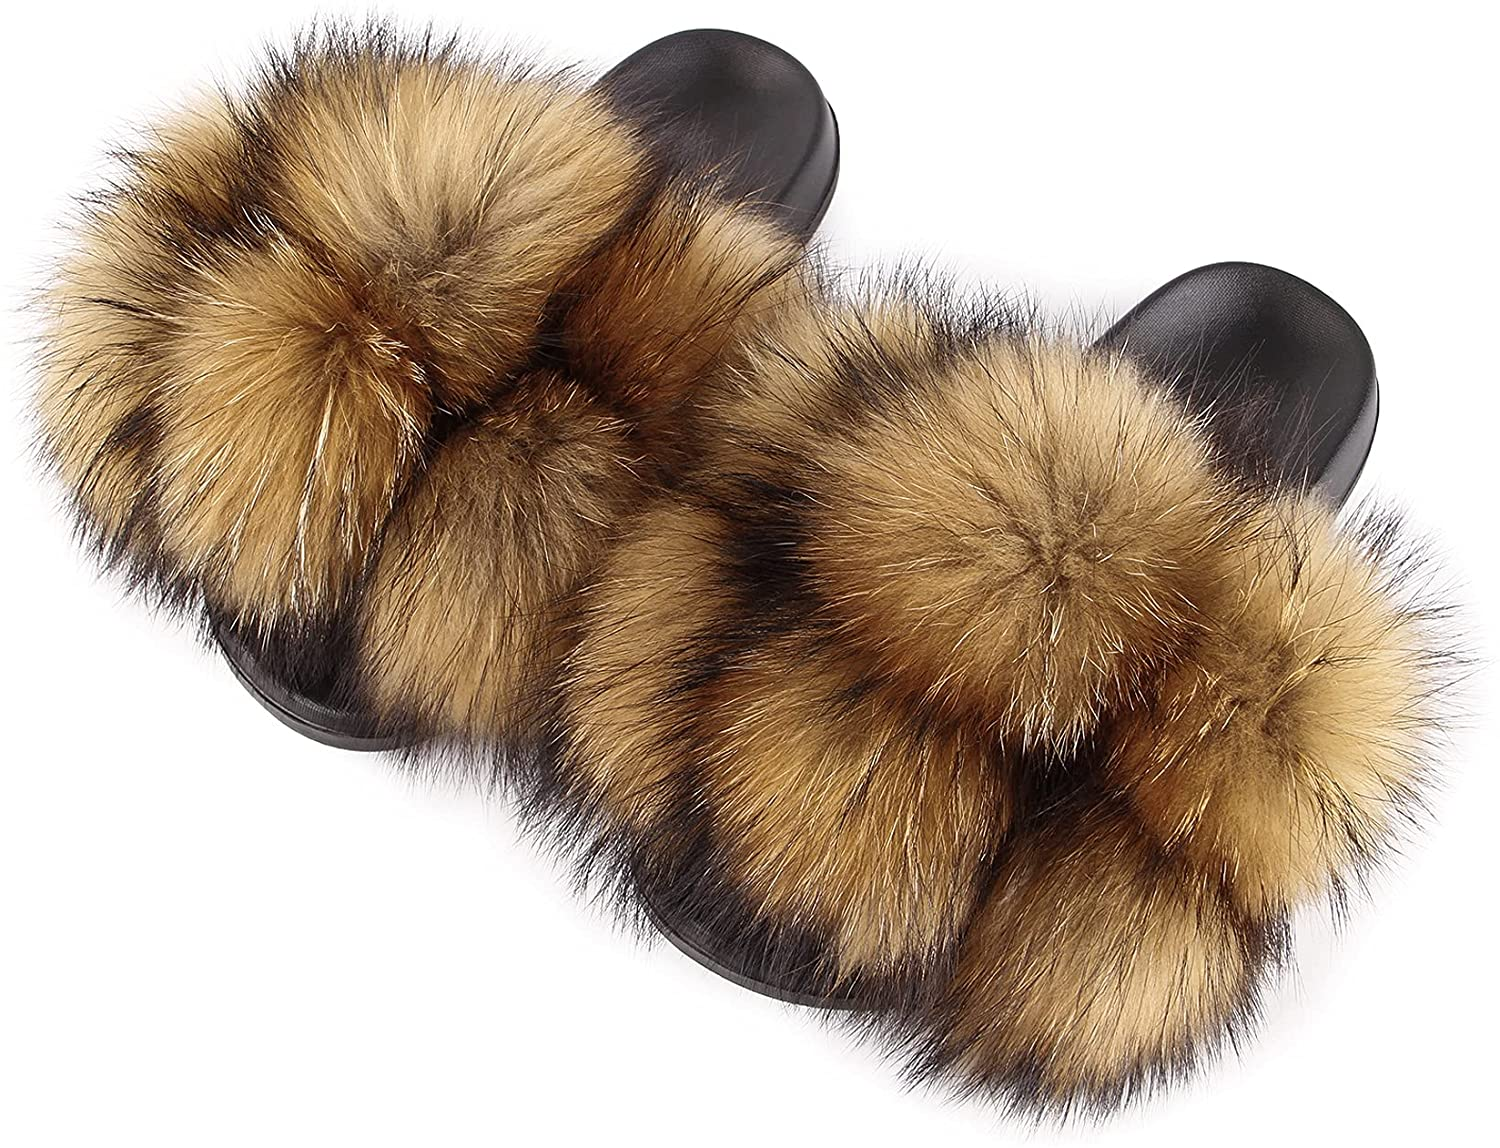 Women's Real Max 73% OFF Fox Furry Fur Open-Toe In Slides Max 74% OFF Sandals Cute